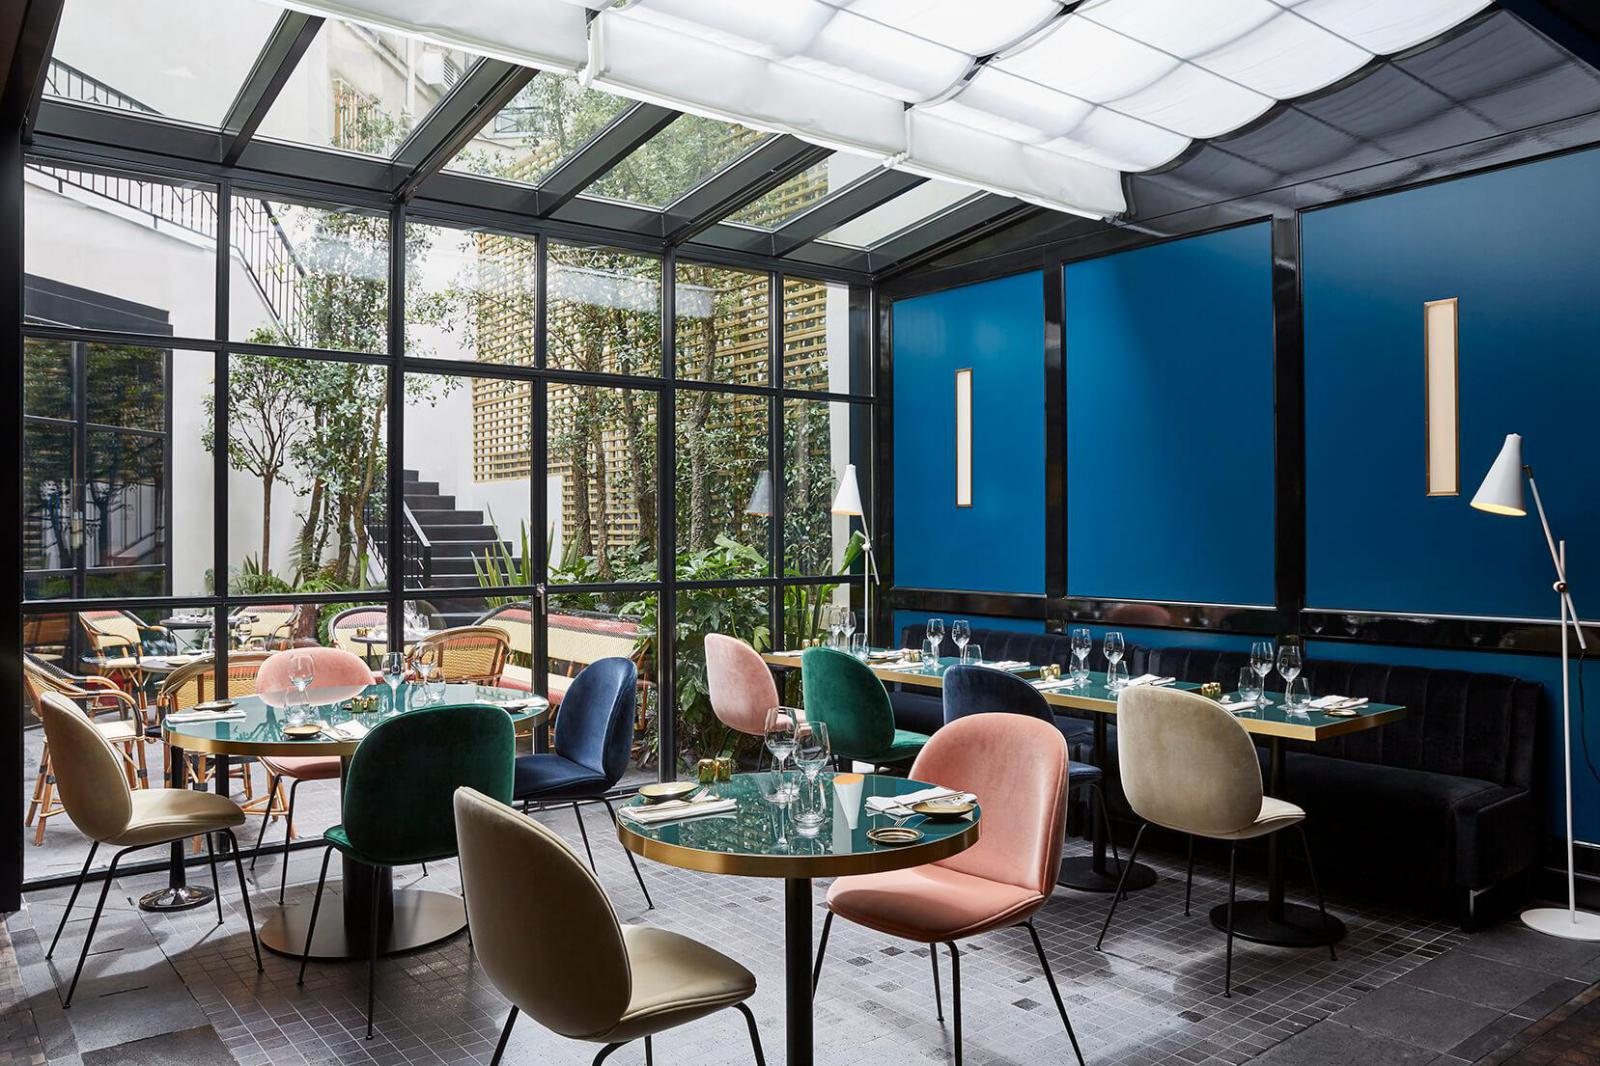 Le Roch Hotel Paris Le Roch Hotel A Stylish Oasis In The Heart Of